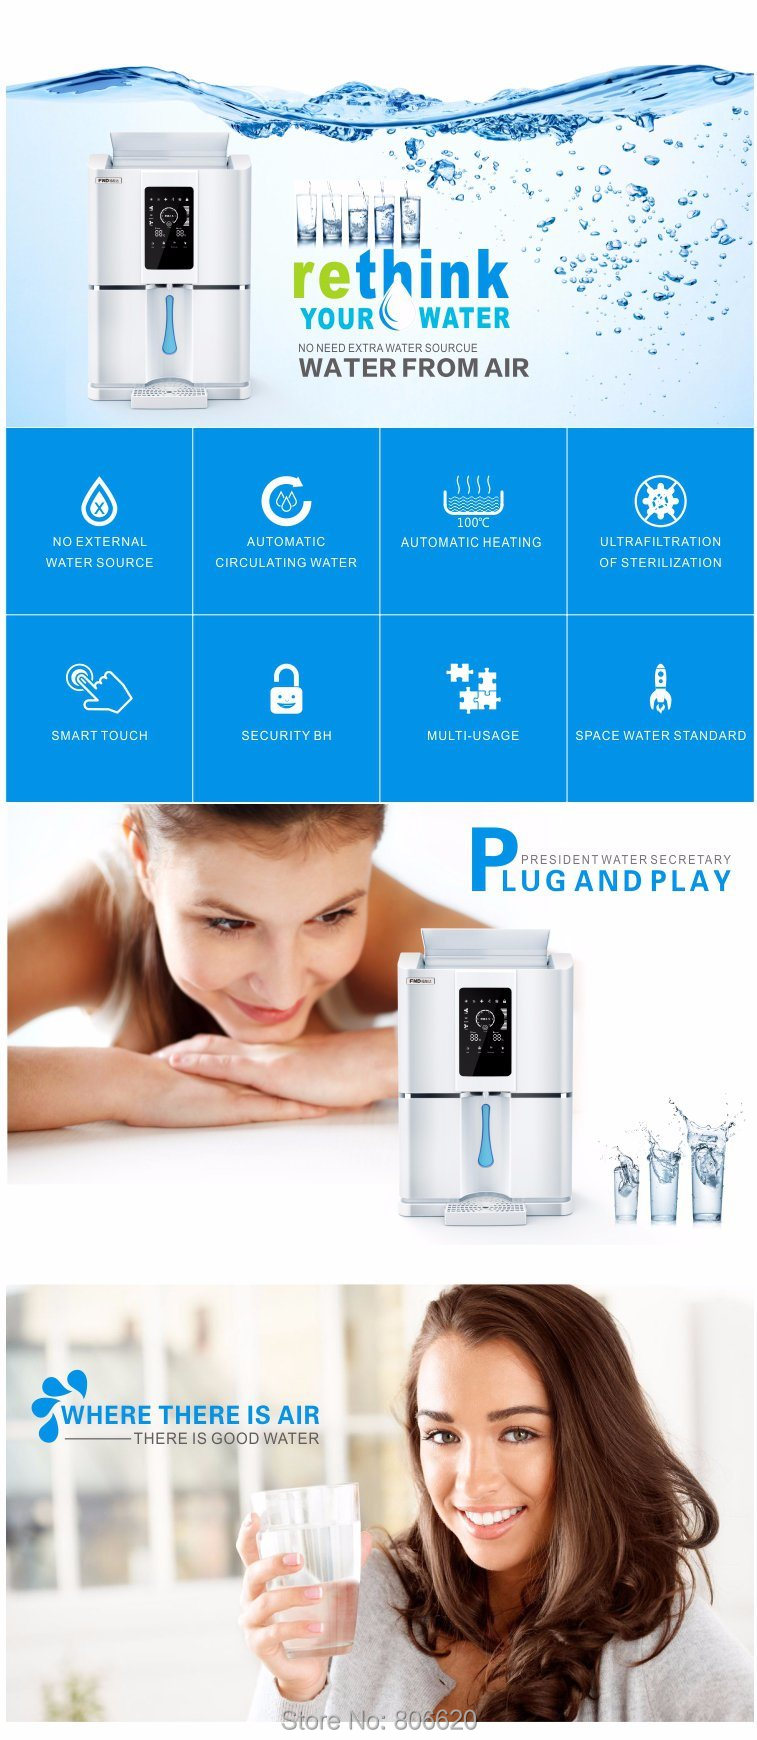 Home 20LD Pure Atmospheric Air to Water Treatment Dispenser Generator with Intelligent RO Filter & NFC Code-Scanning Match Tech_Description